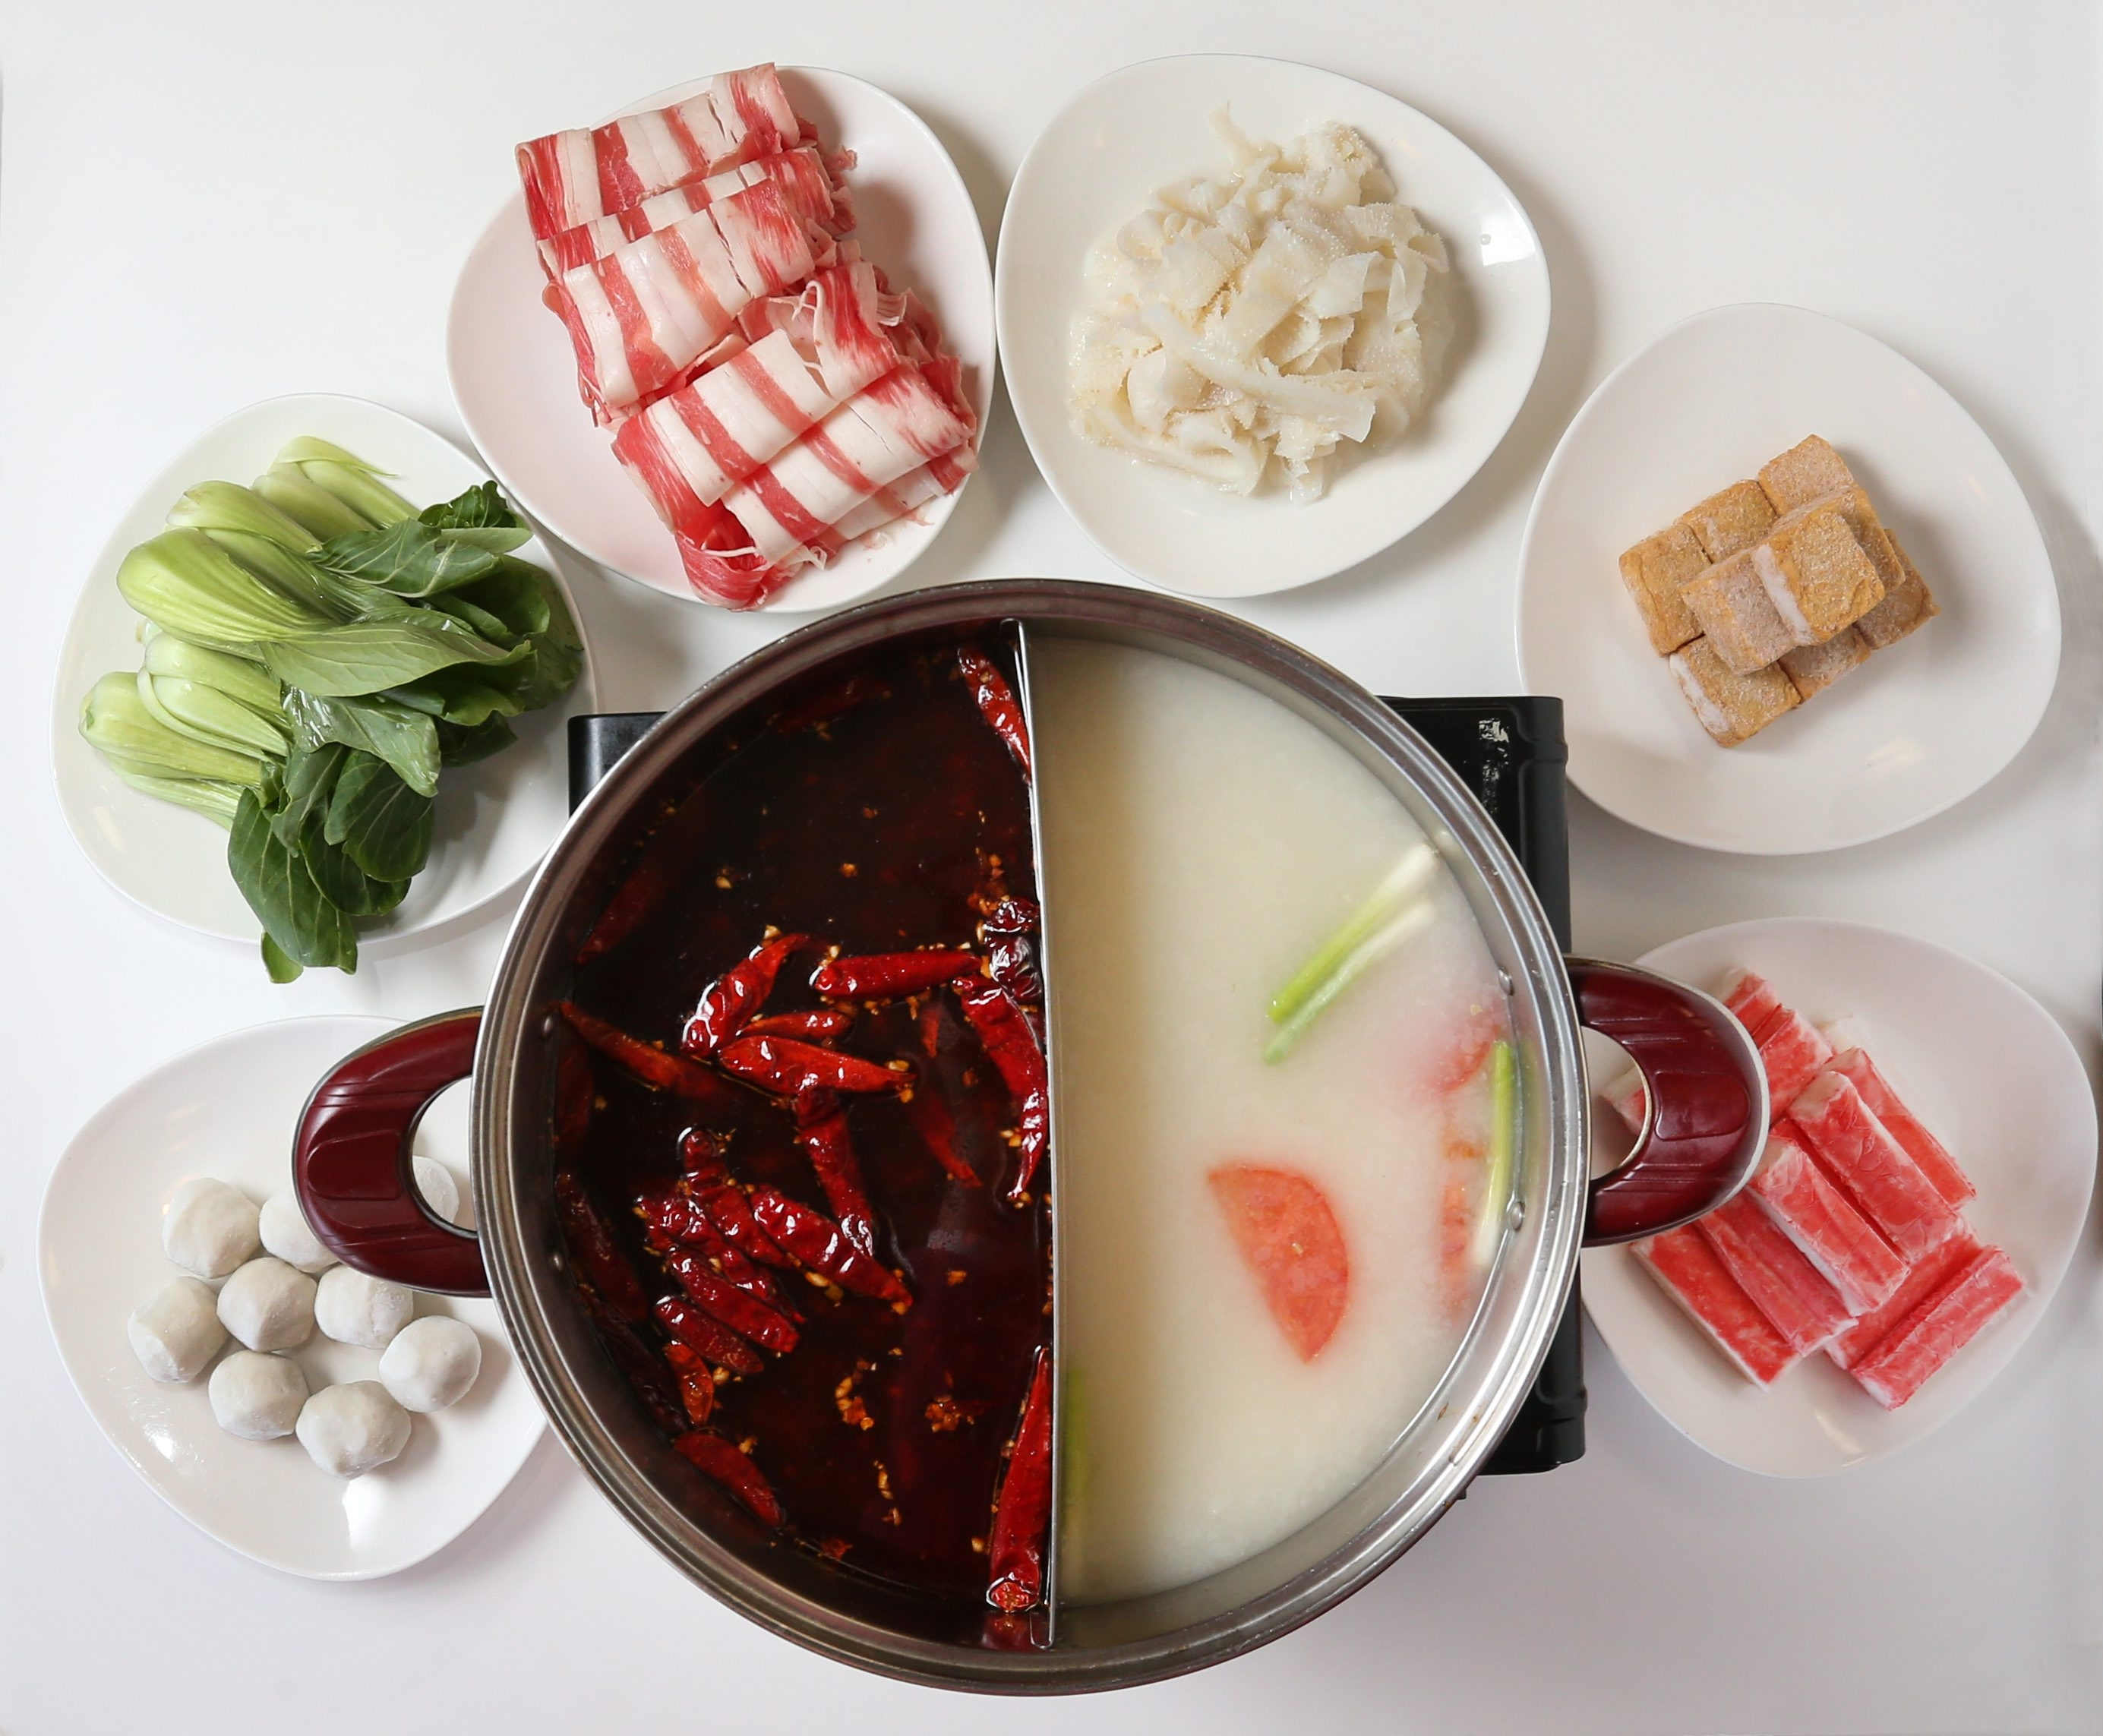 China Star restaurant is at 4001 Sheridan Drive in Amherst.  This is the Chong Qing Hot Pot.  It's served family style and diners cook their dinners in the boiling soups. Photo taken, Tuesday, April 21, 2015.  (Sharon Cantillon/Buffalo News)